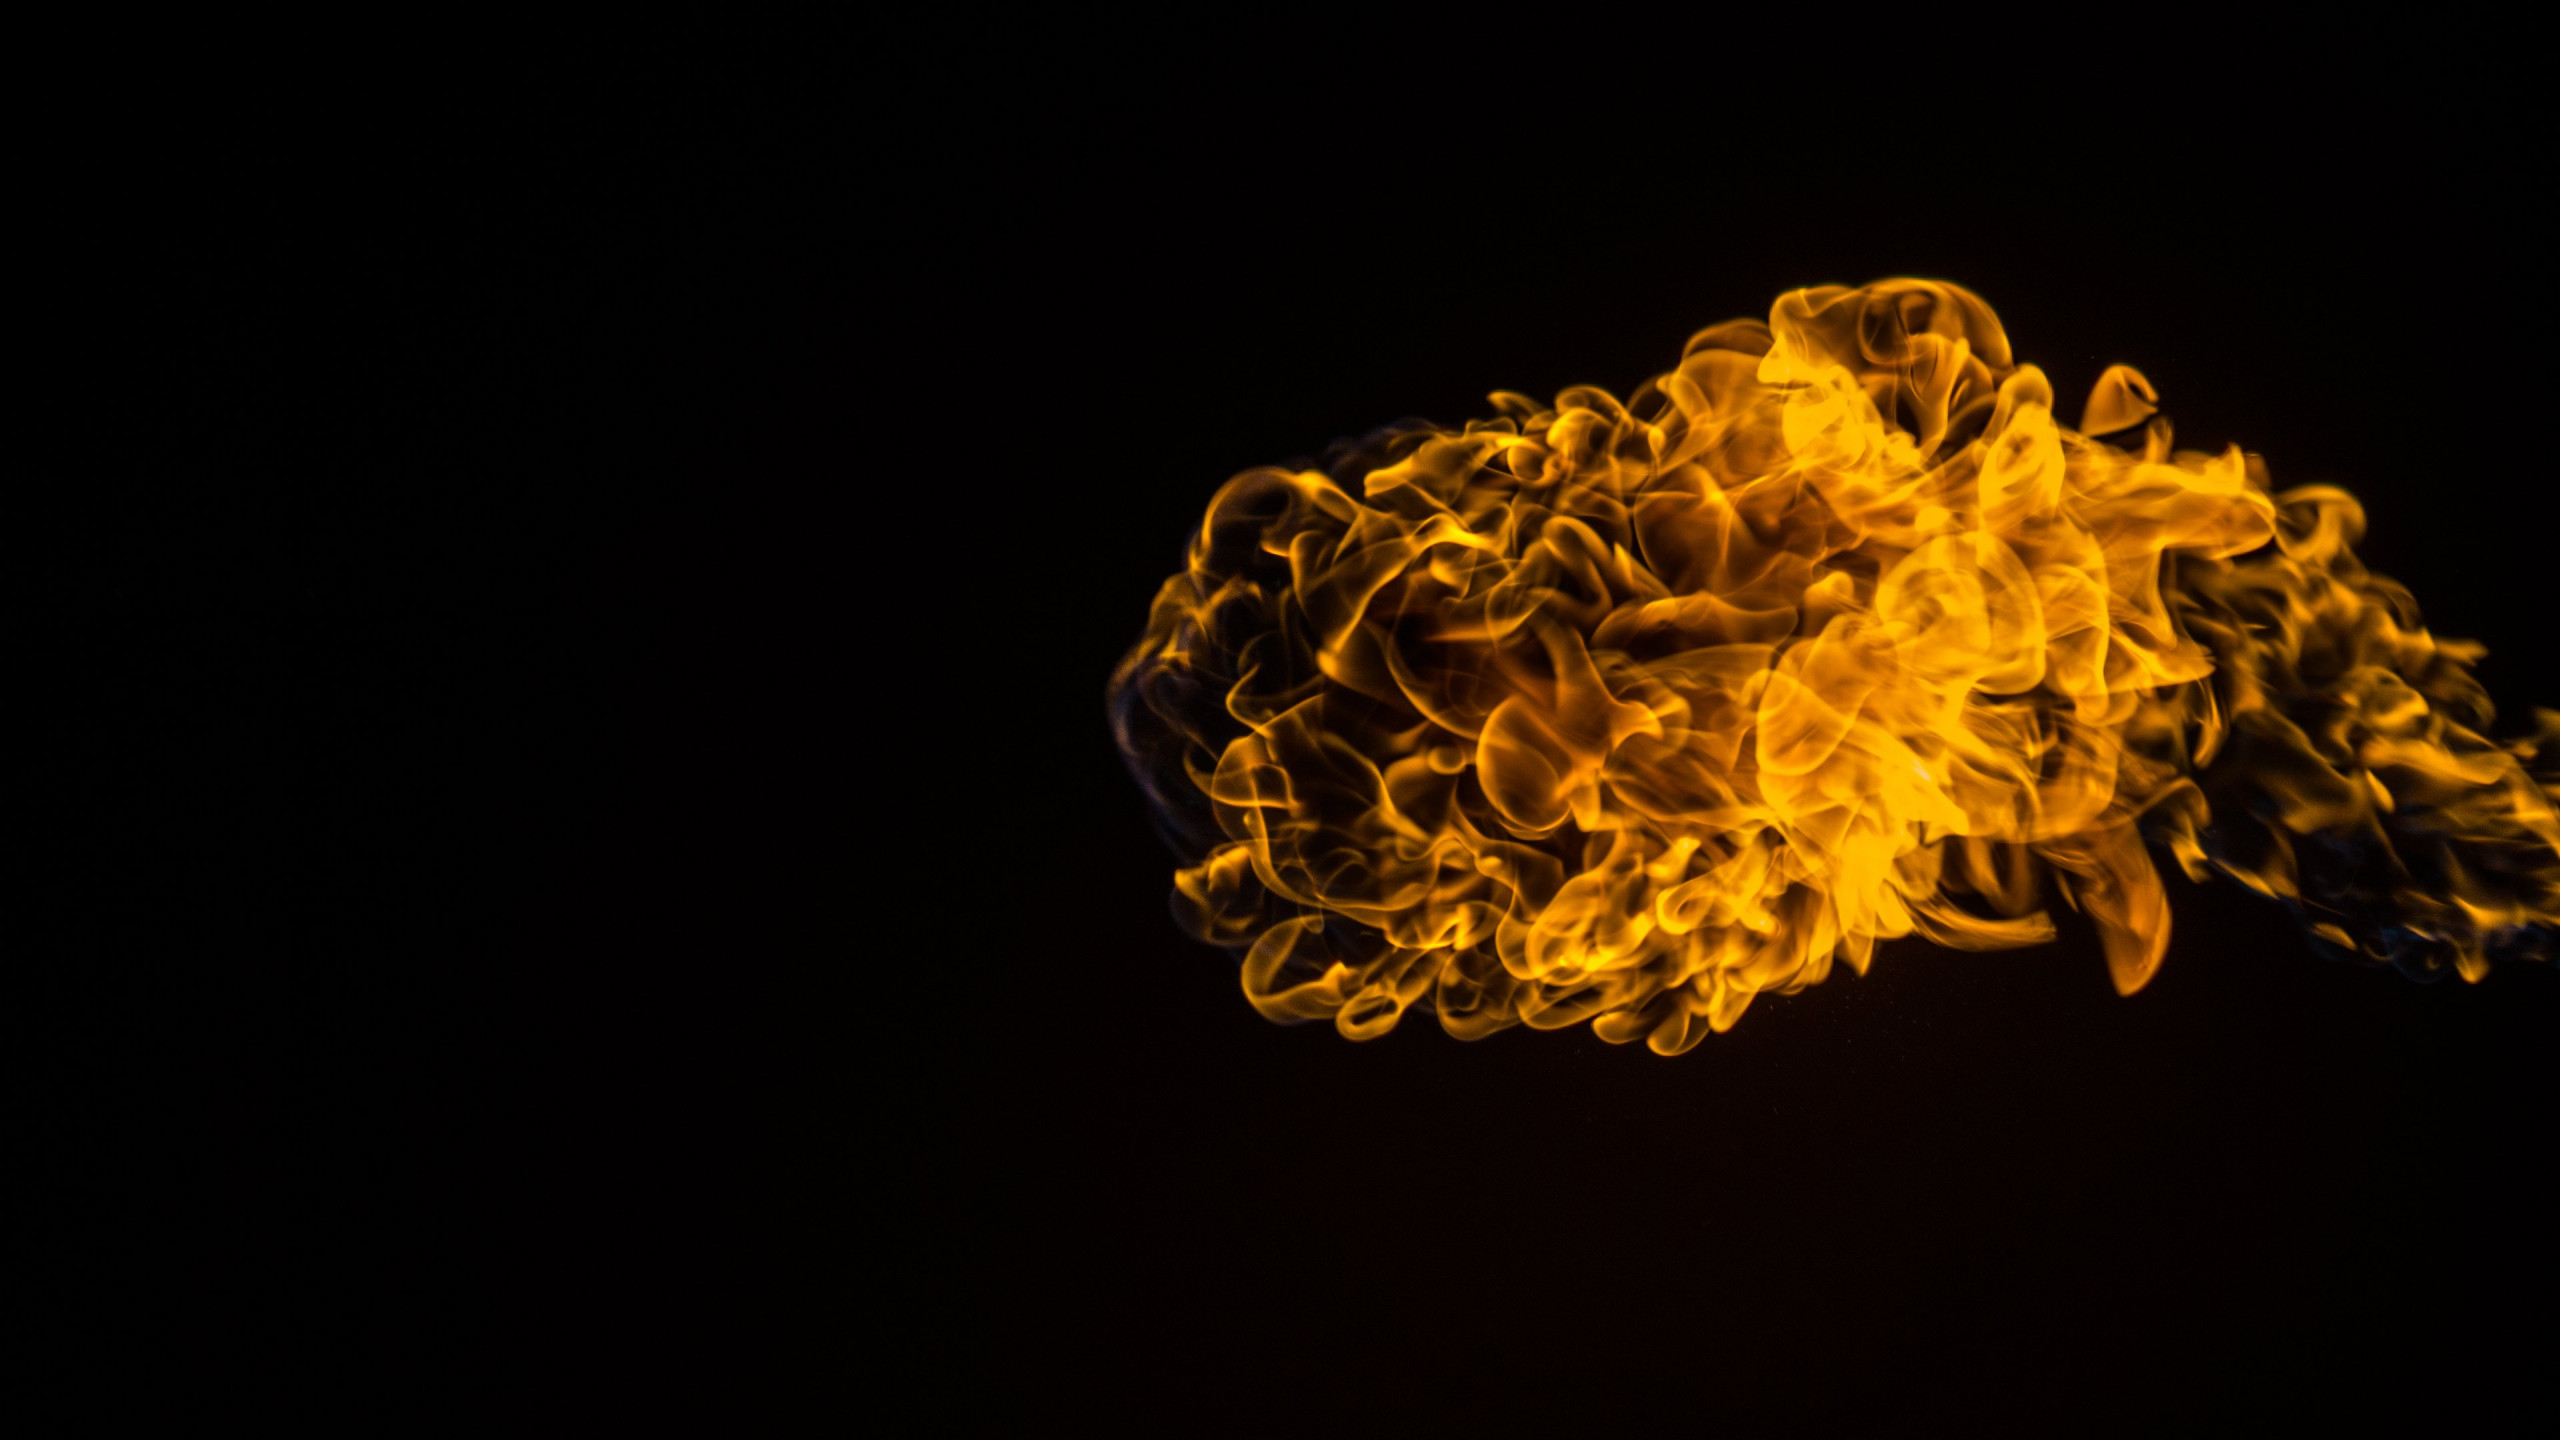 Flames effect wallpaper 2560x1440